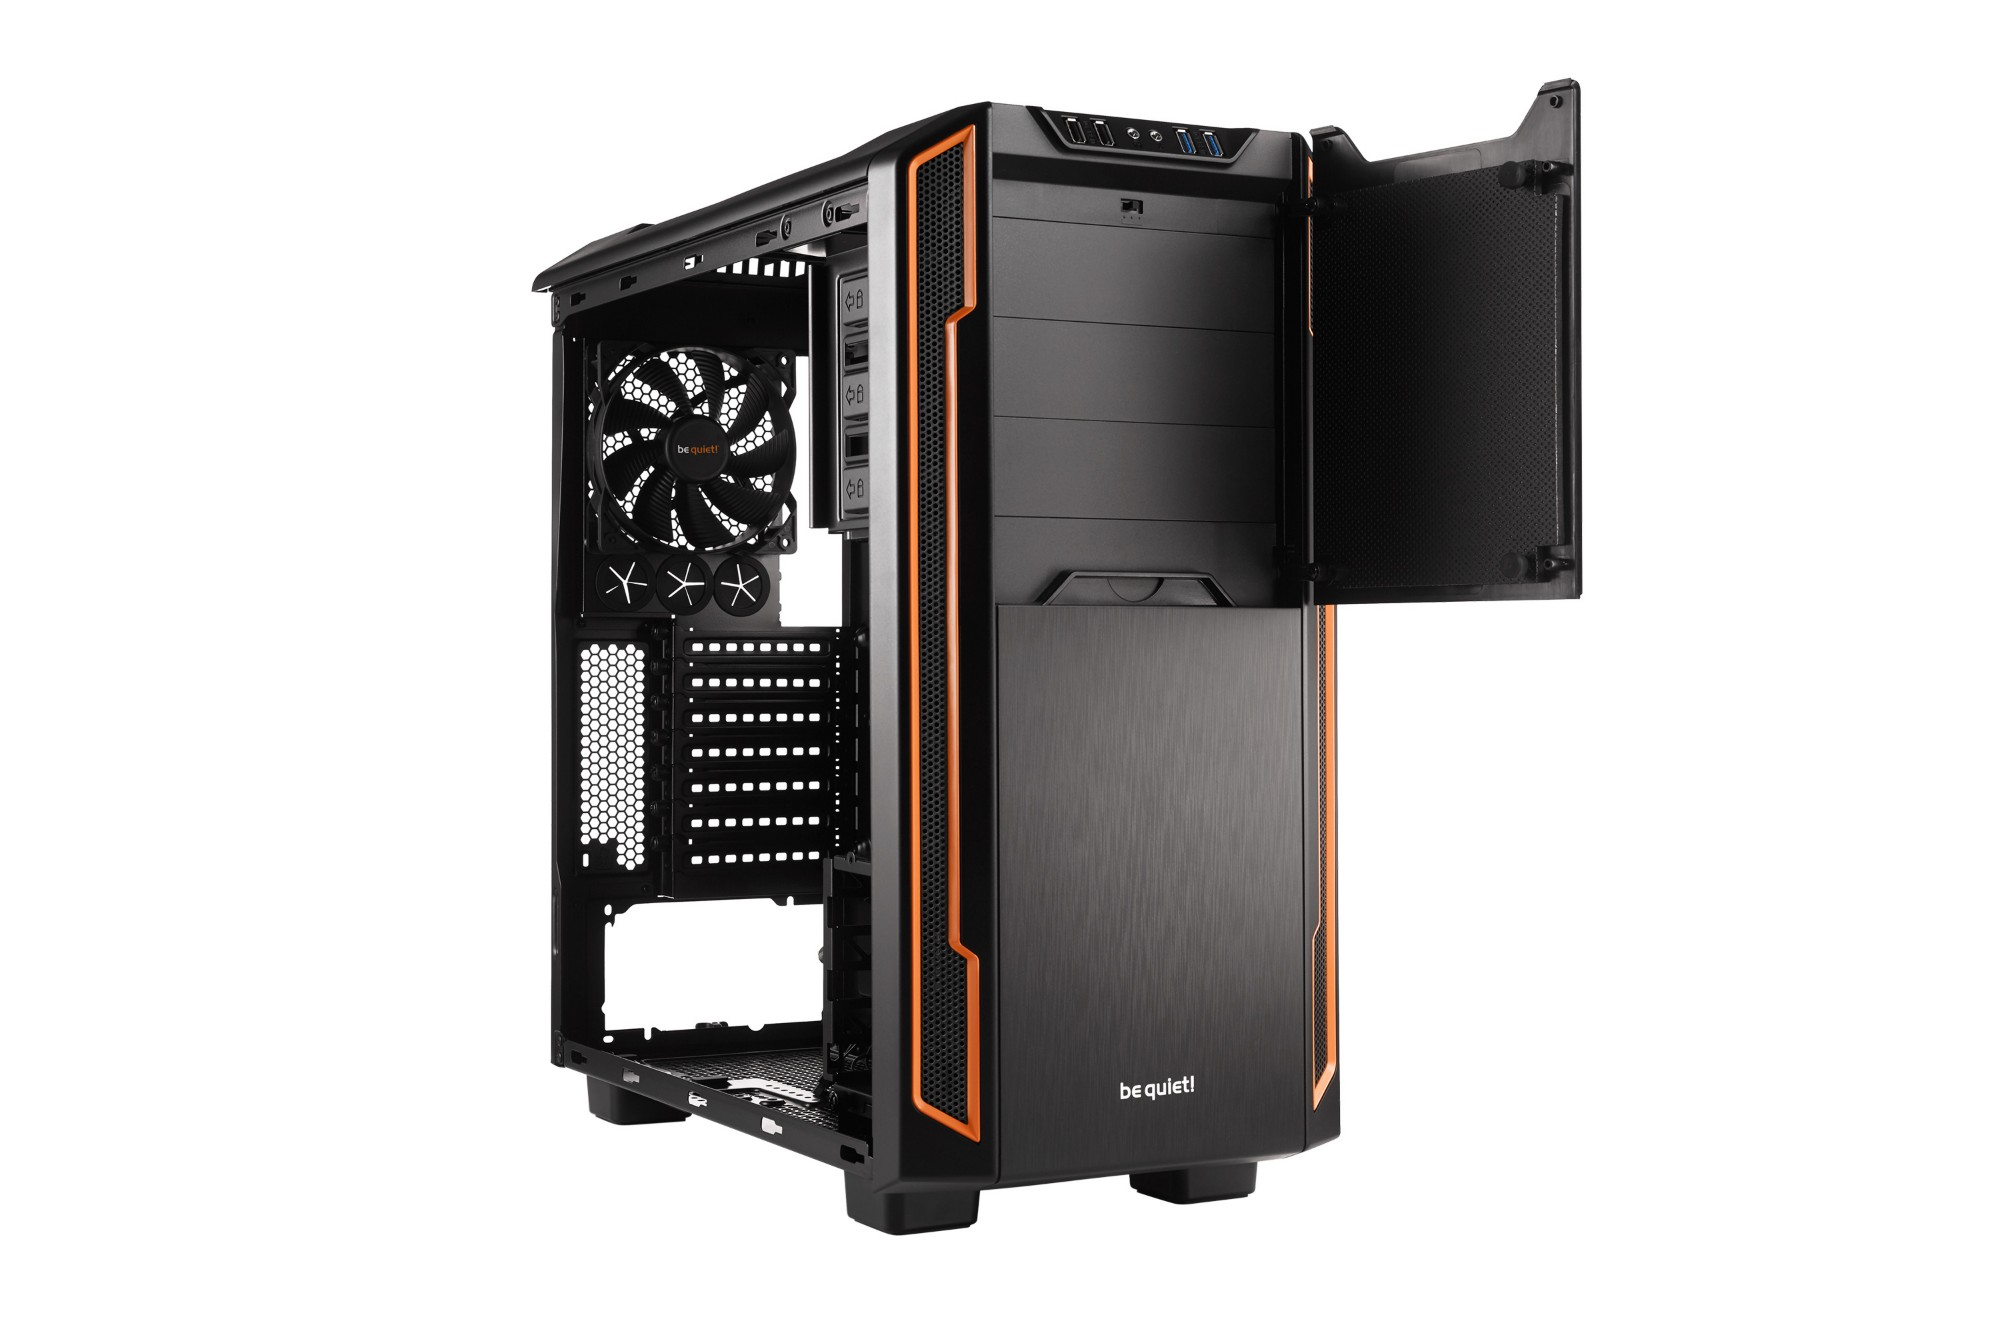 BE QUIET! BG005 SILENT BASE 600 DESKTOP ORANGE,BLACK COMPUTER CASE